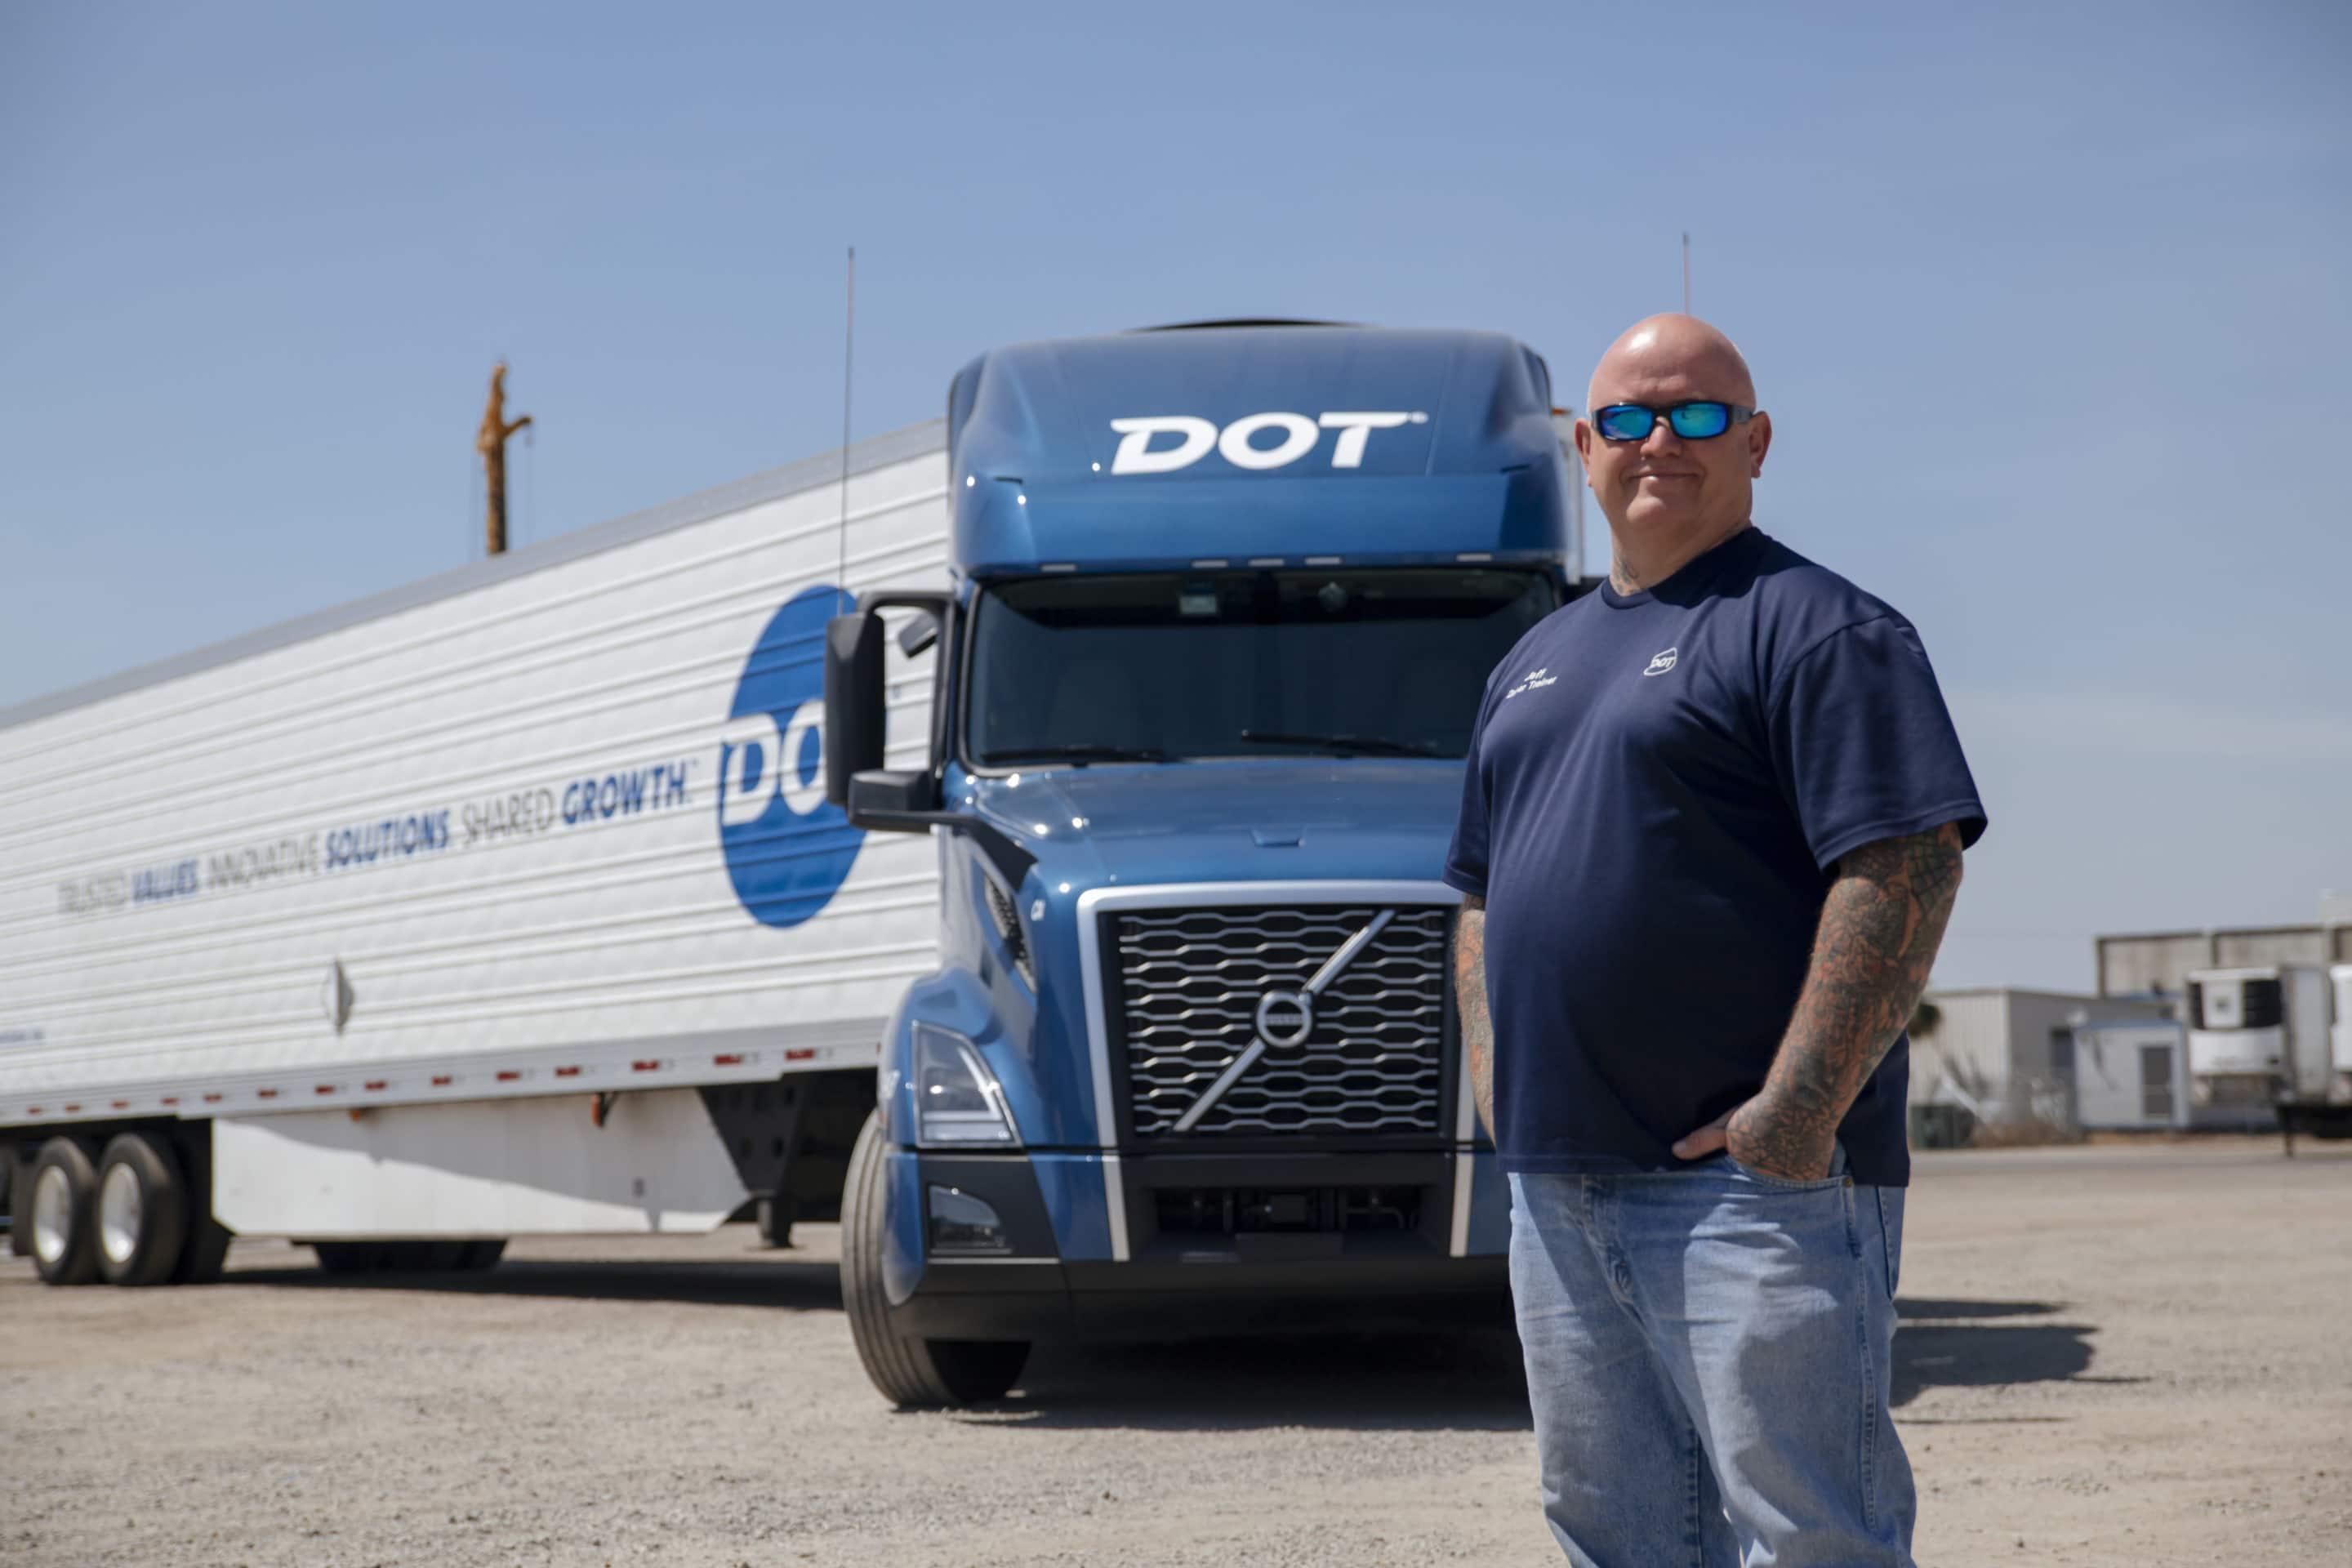 Driver Compensation & Benefits | Drive For Dot | Dot